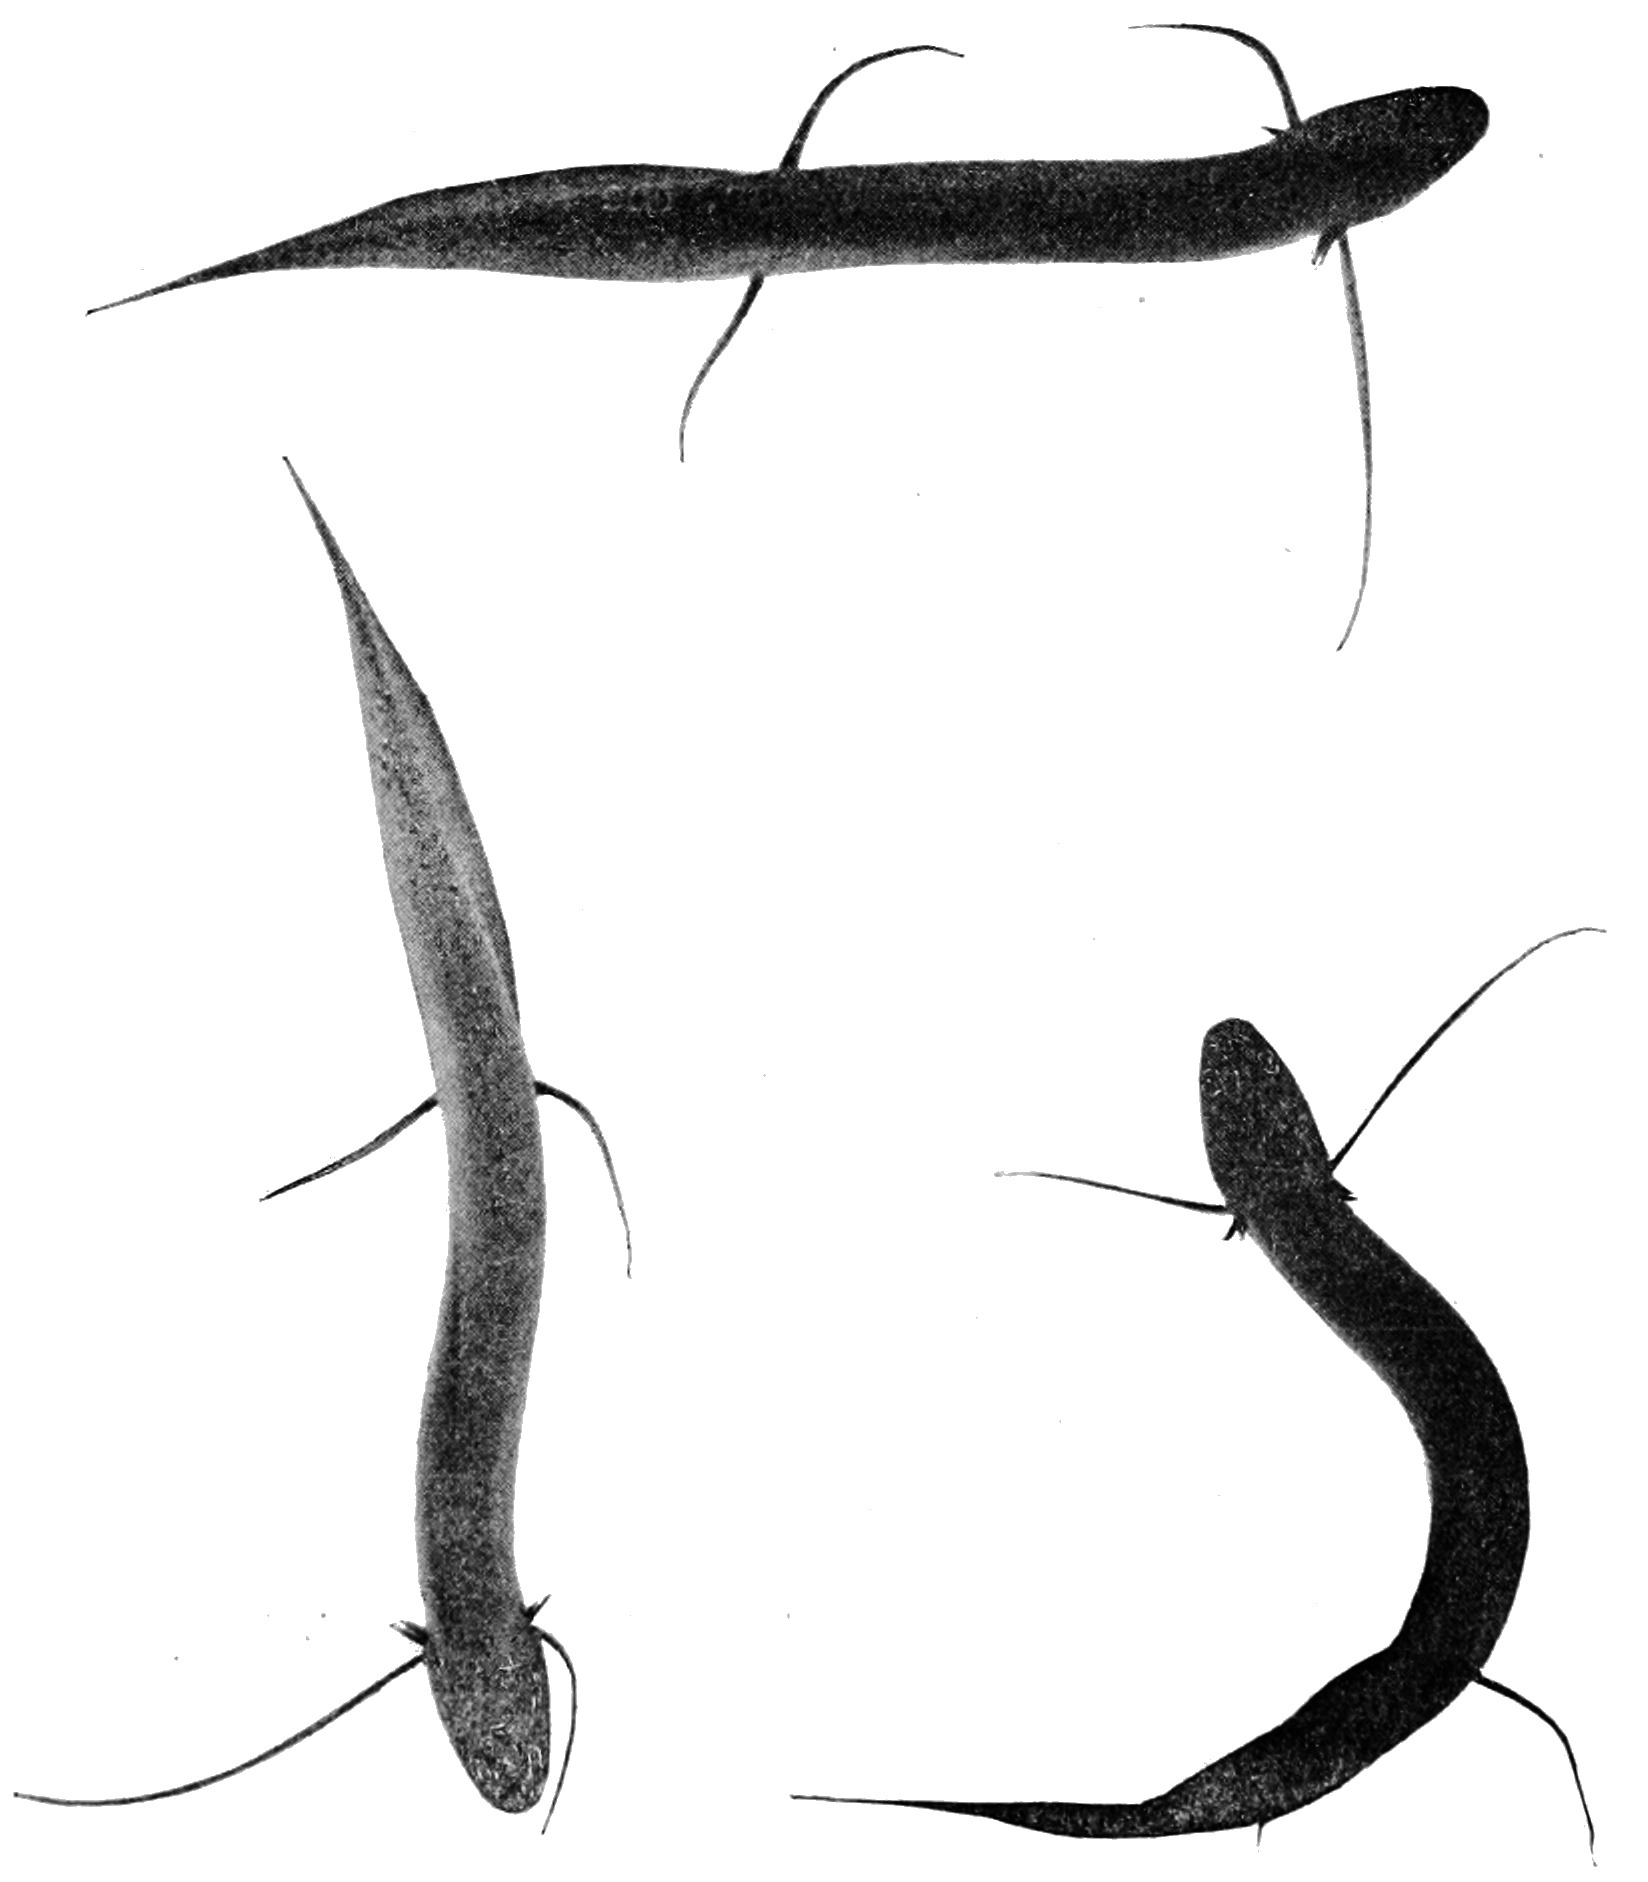 Image of African lungfishes